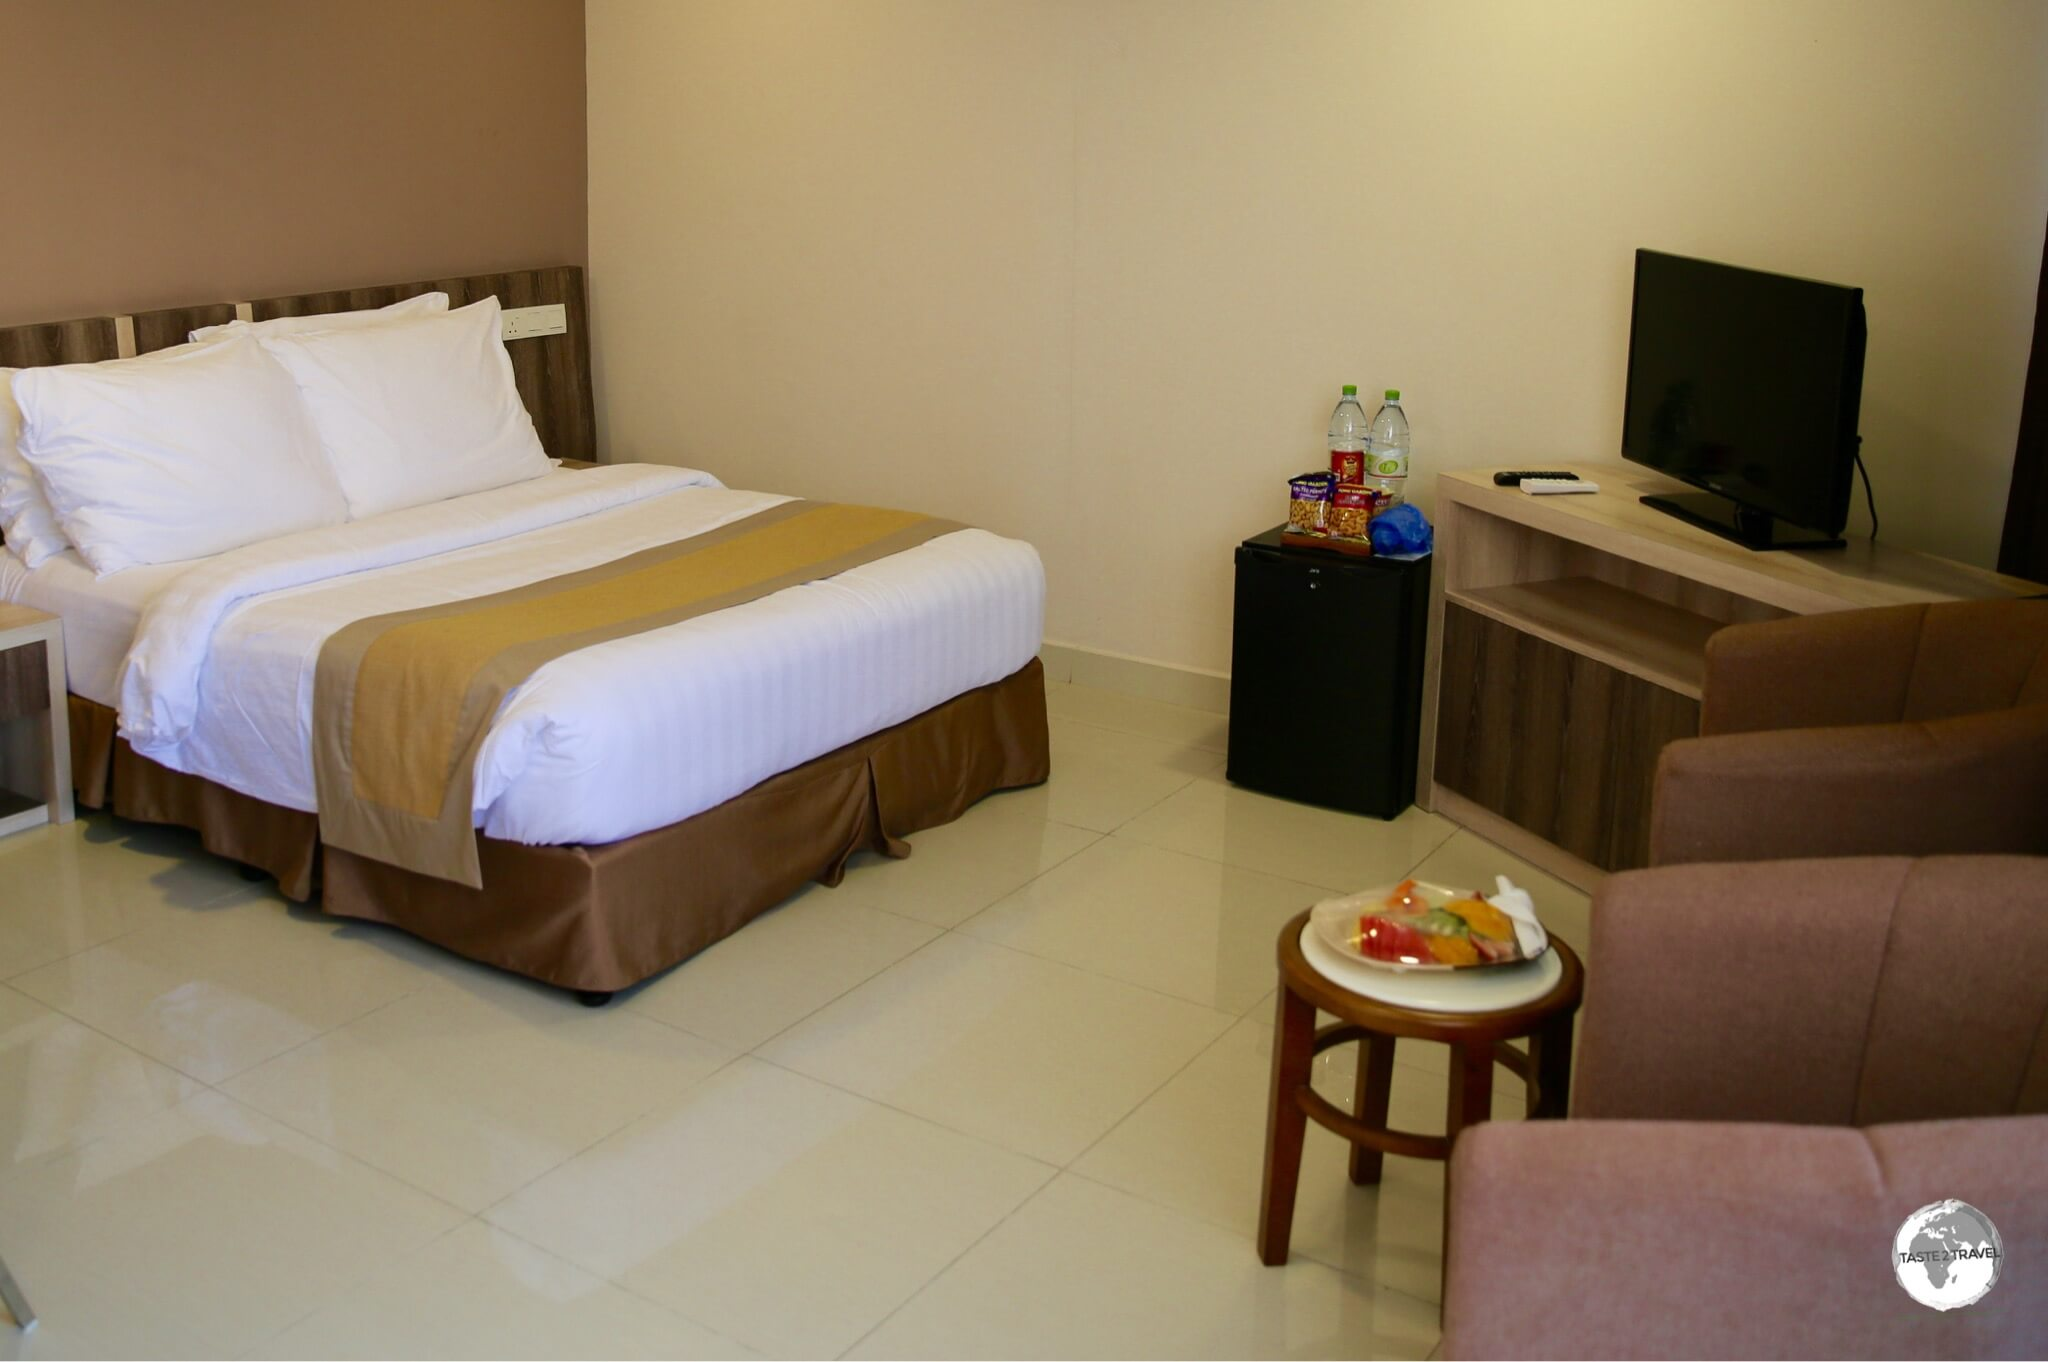 The spacious rooms at the Champa Central hotel offer a welcome respite from over-crowded Malé.